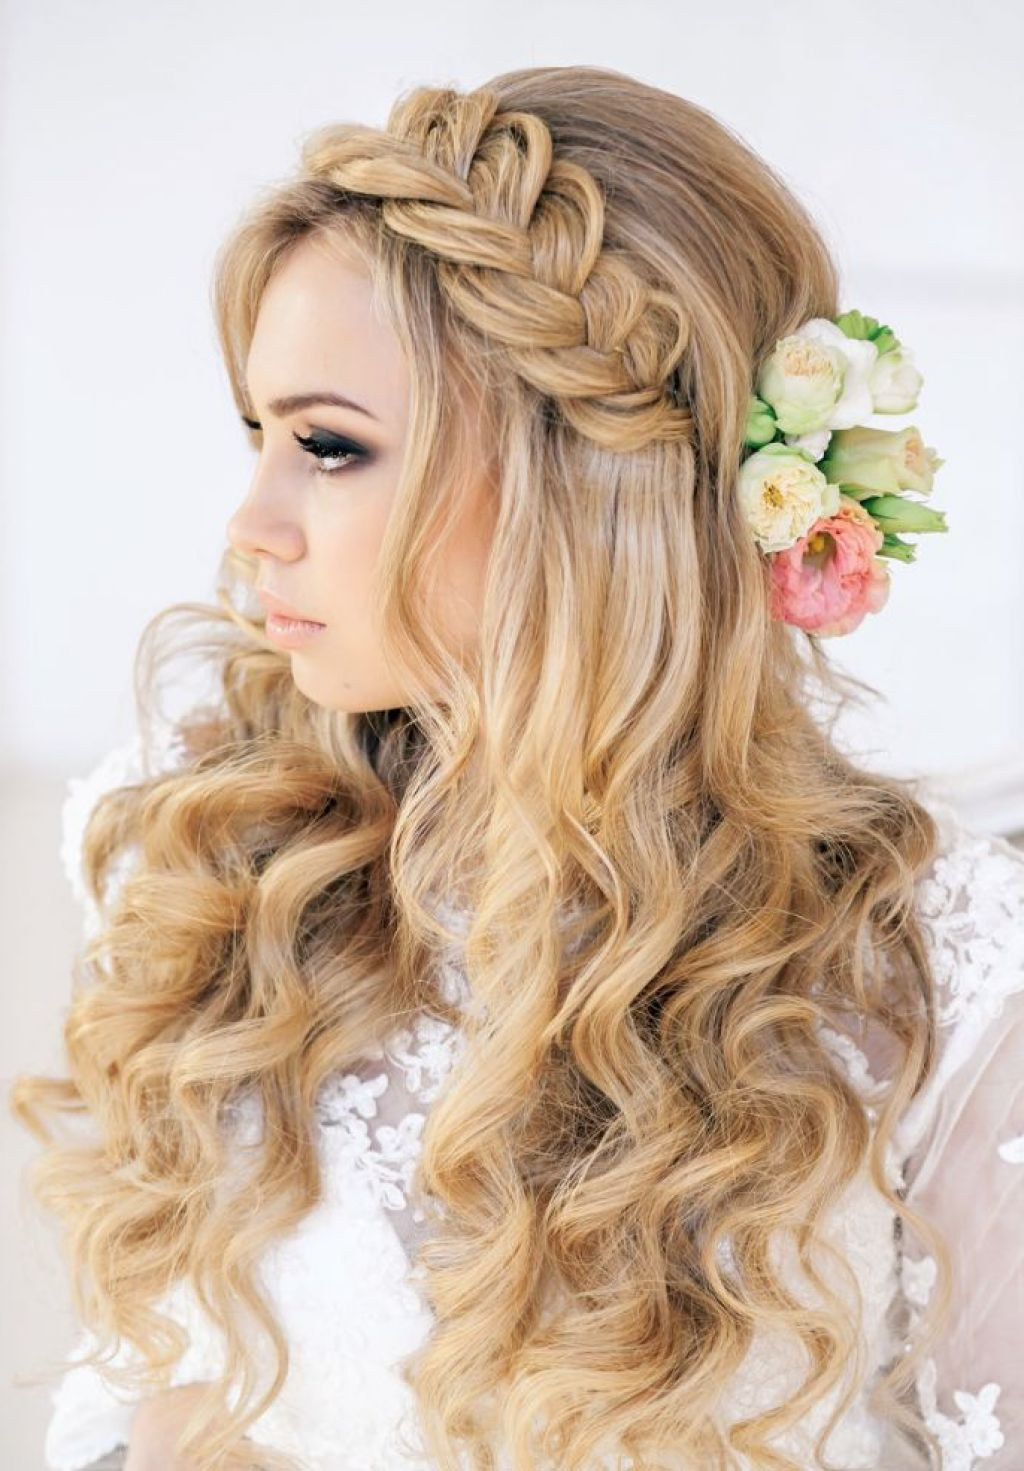 Prom Hairstyles  65 Prom Hairstyles That plement Your Beauty Fave